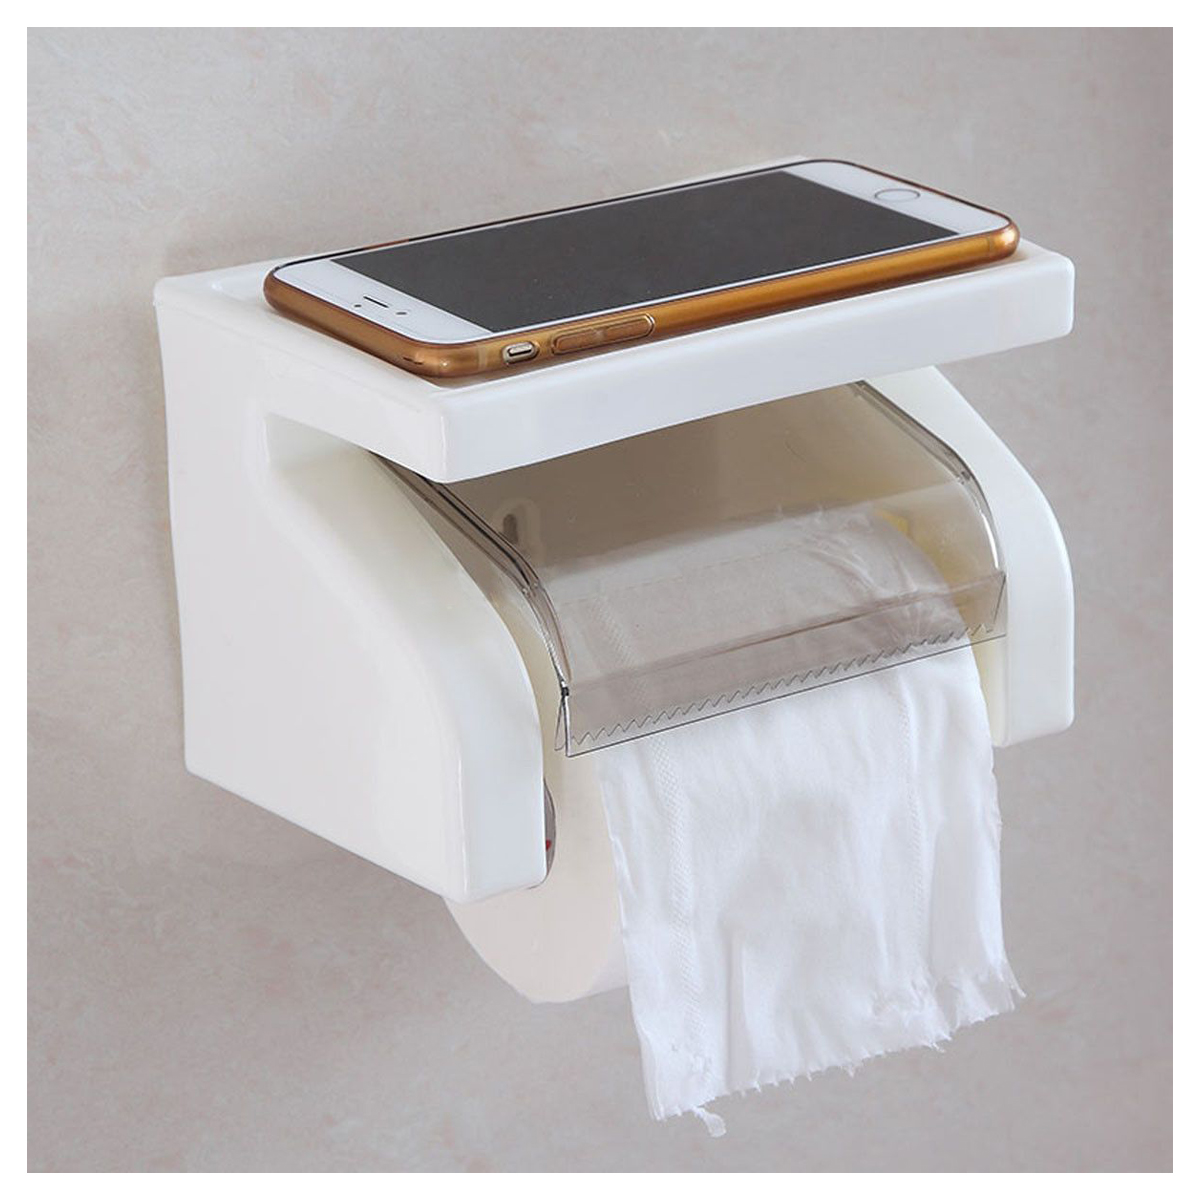 Waterproof toilet paper holder tissue roll stand box with shelf rack bathroom t1 ebay - Tissue holder bathroom ...